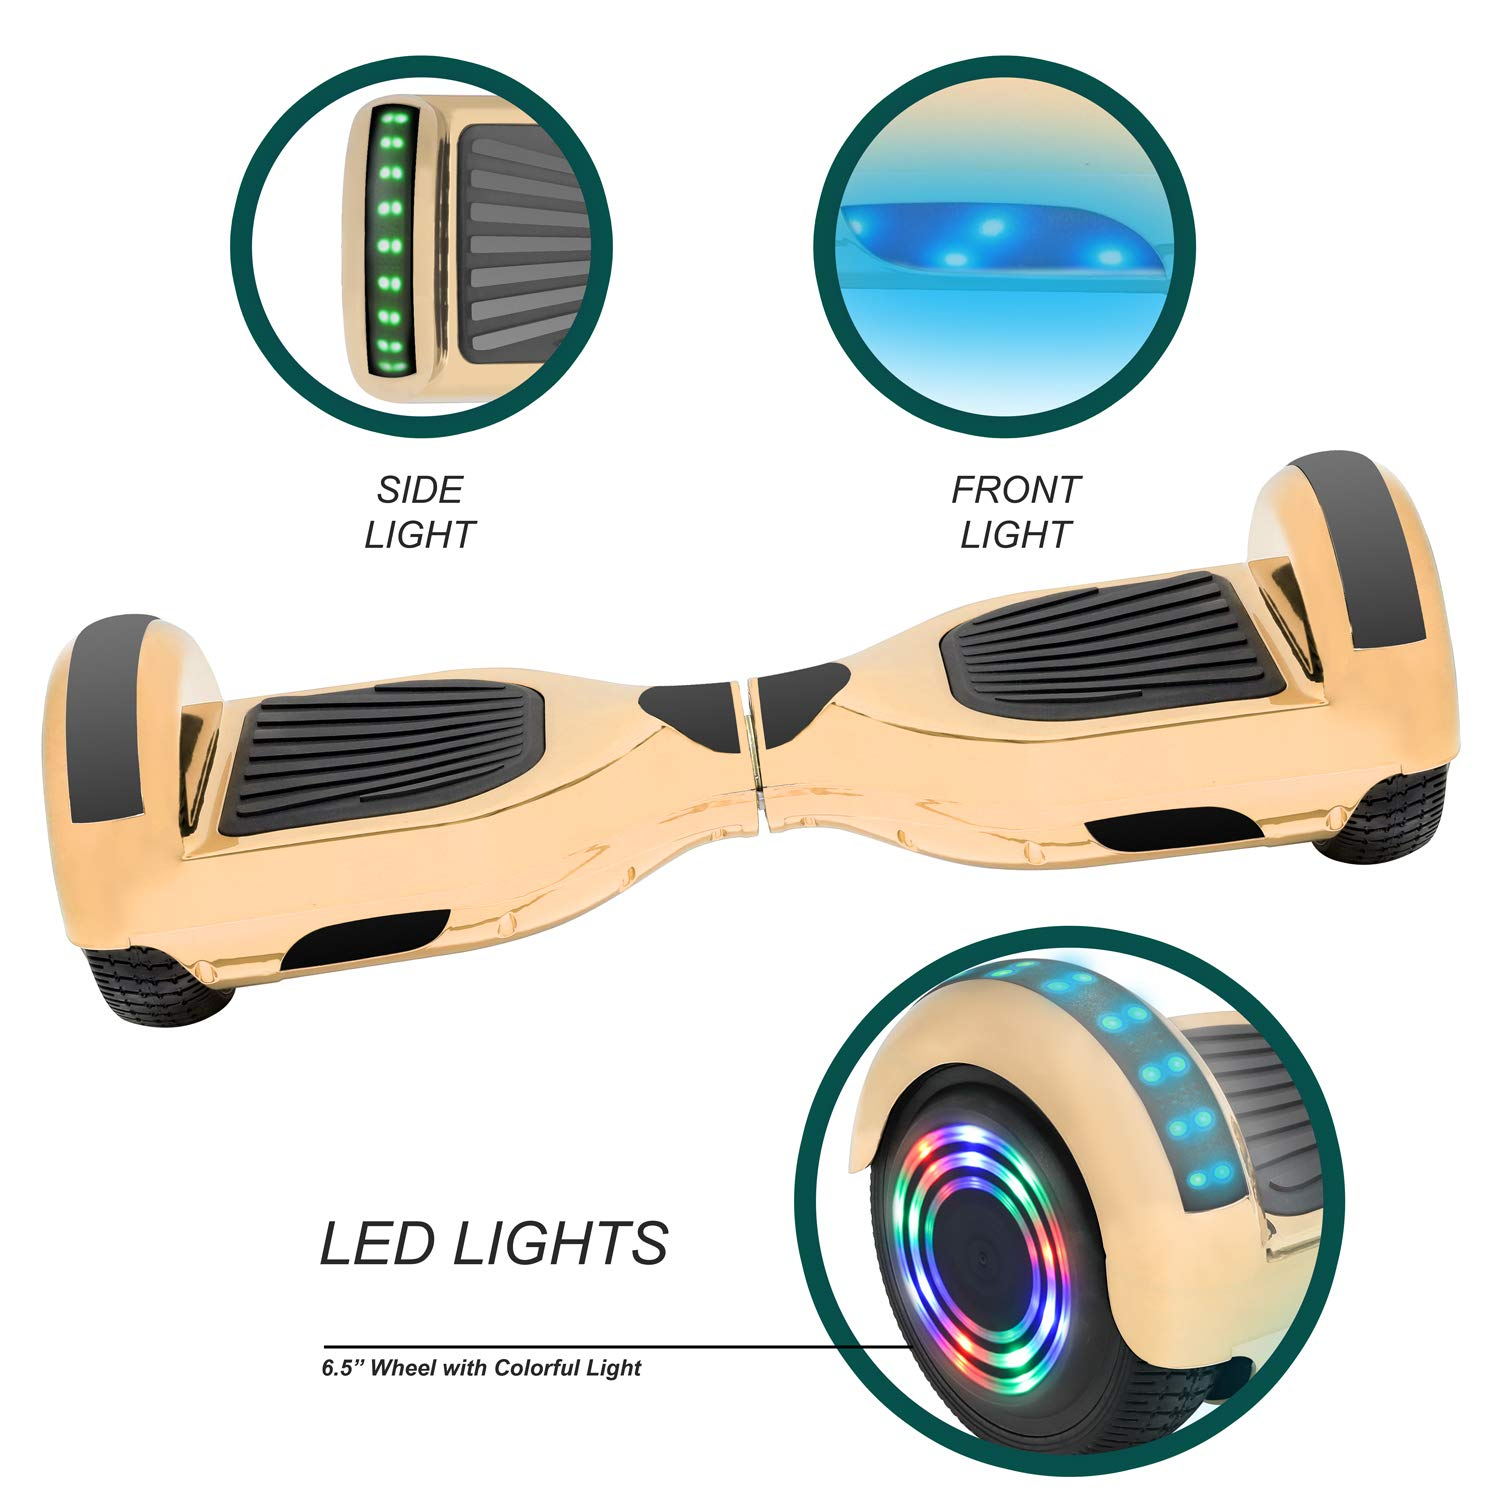 NHT 6.5'' Hoverboard Electric Self Balancing Scooter Sidelights - UL2272 Certified Black, Blue, Pink, Red, White (Chrome Gold) by NHT (Image #2)